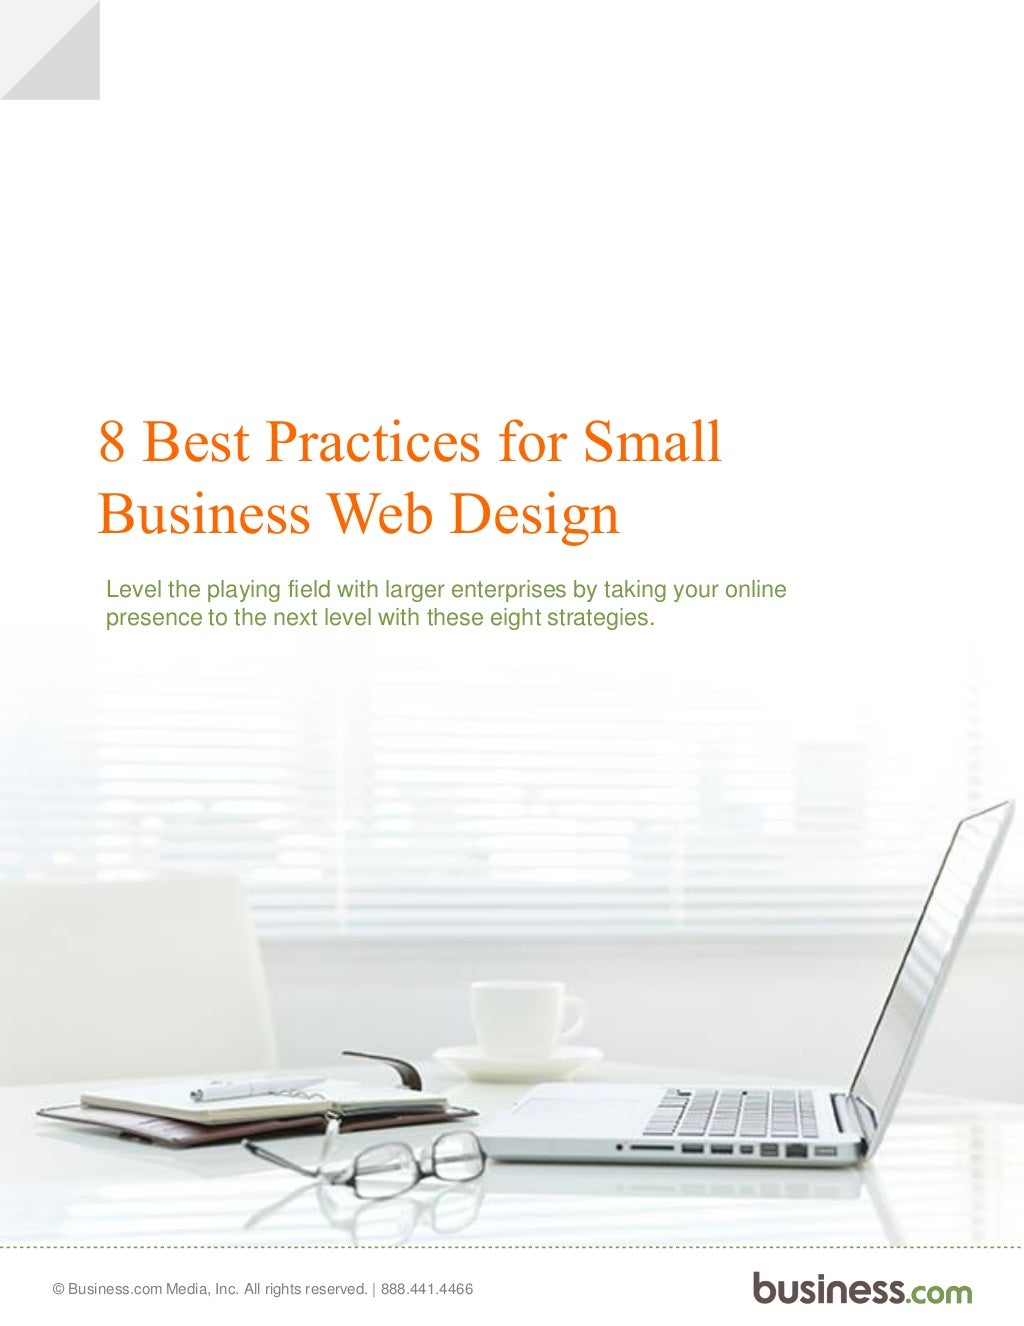 8 Best Practices for Small Business Web Design- Business.com Guide